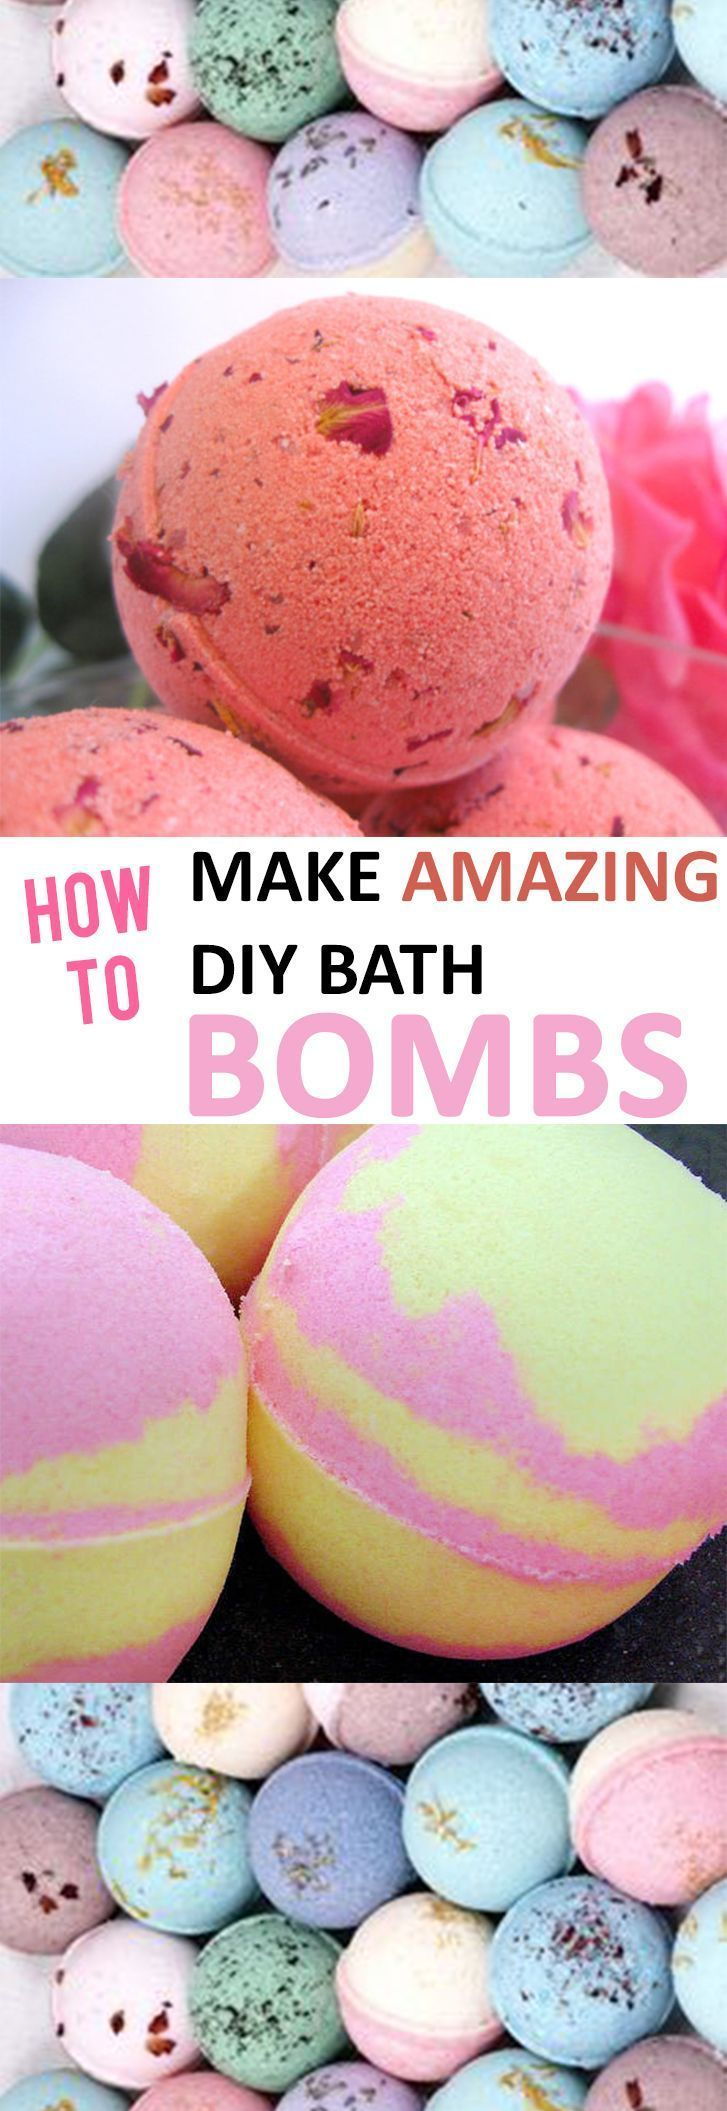 No bath is the same without a bath bomb, here's how to make them yourself!